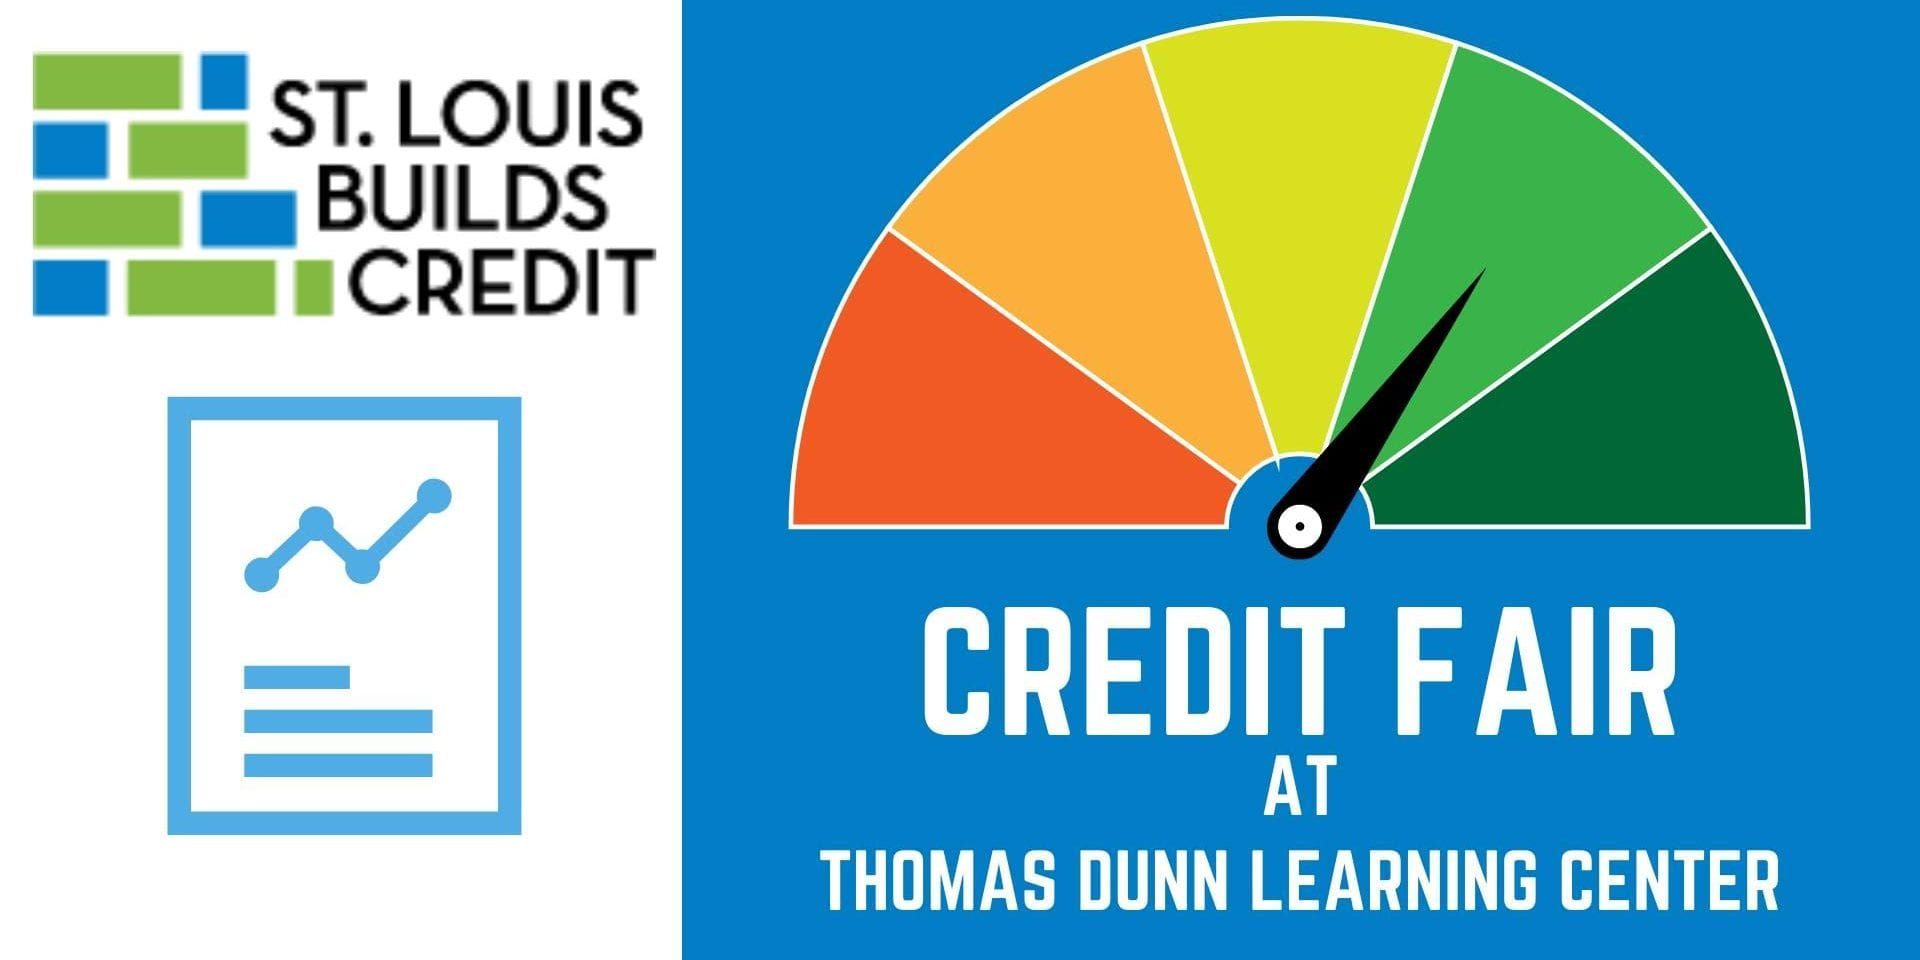 St. Louis Builds Credits Credit Fair at Thomas Dunn Learning Center.